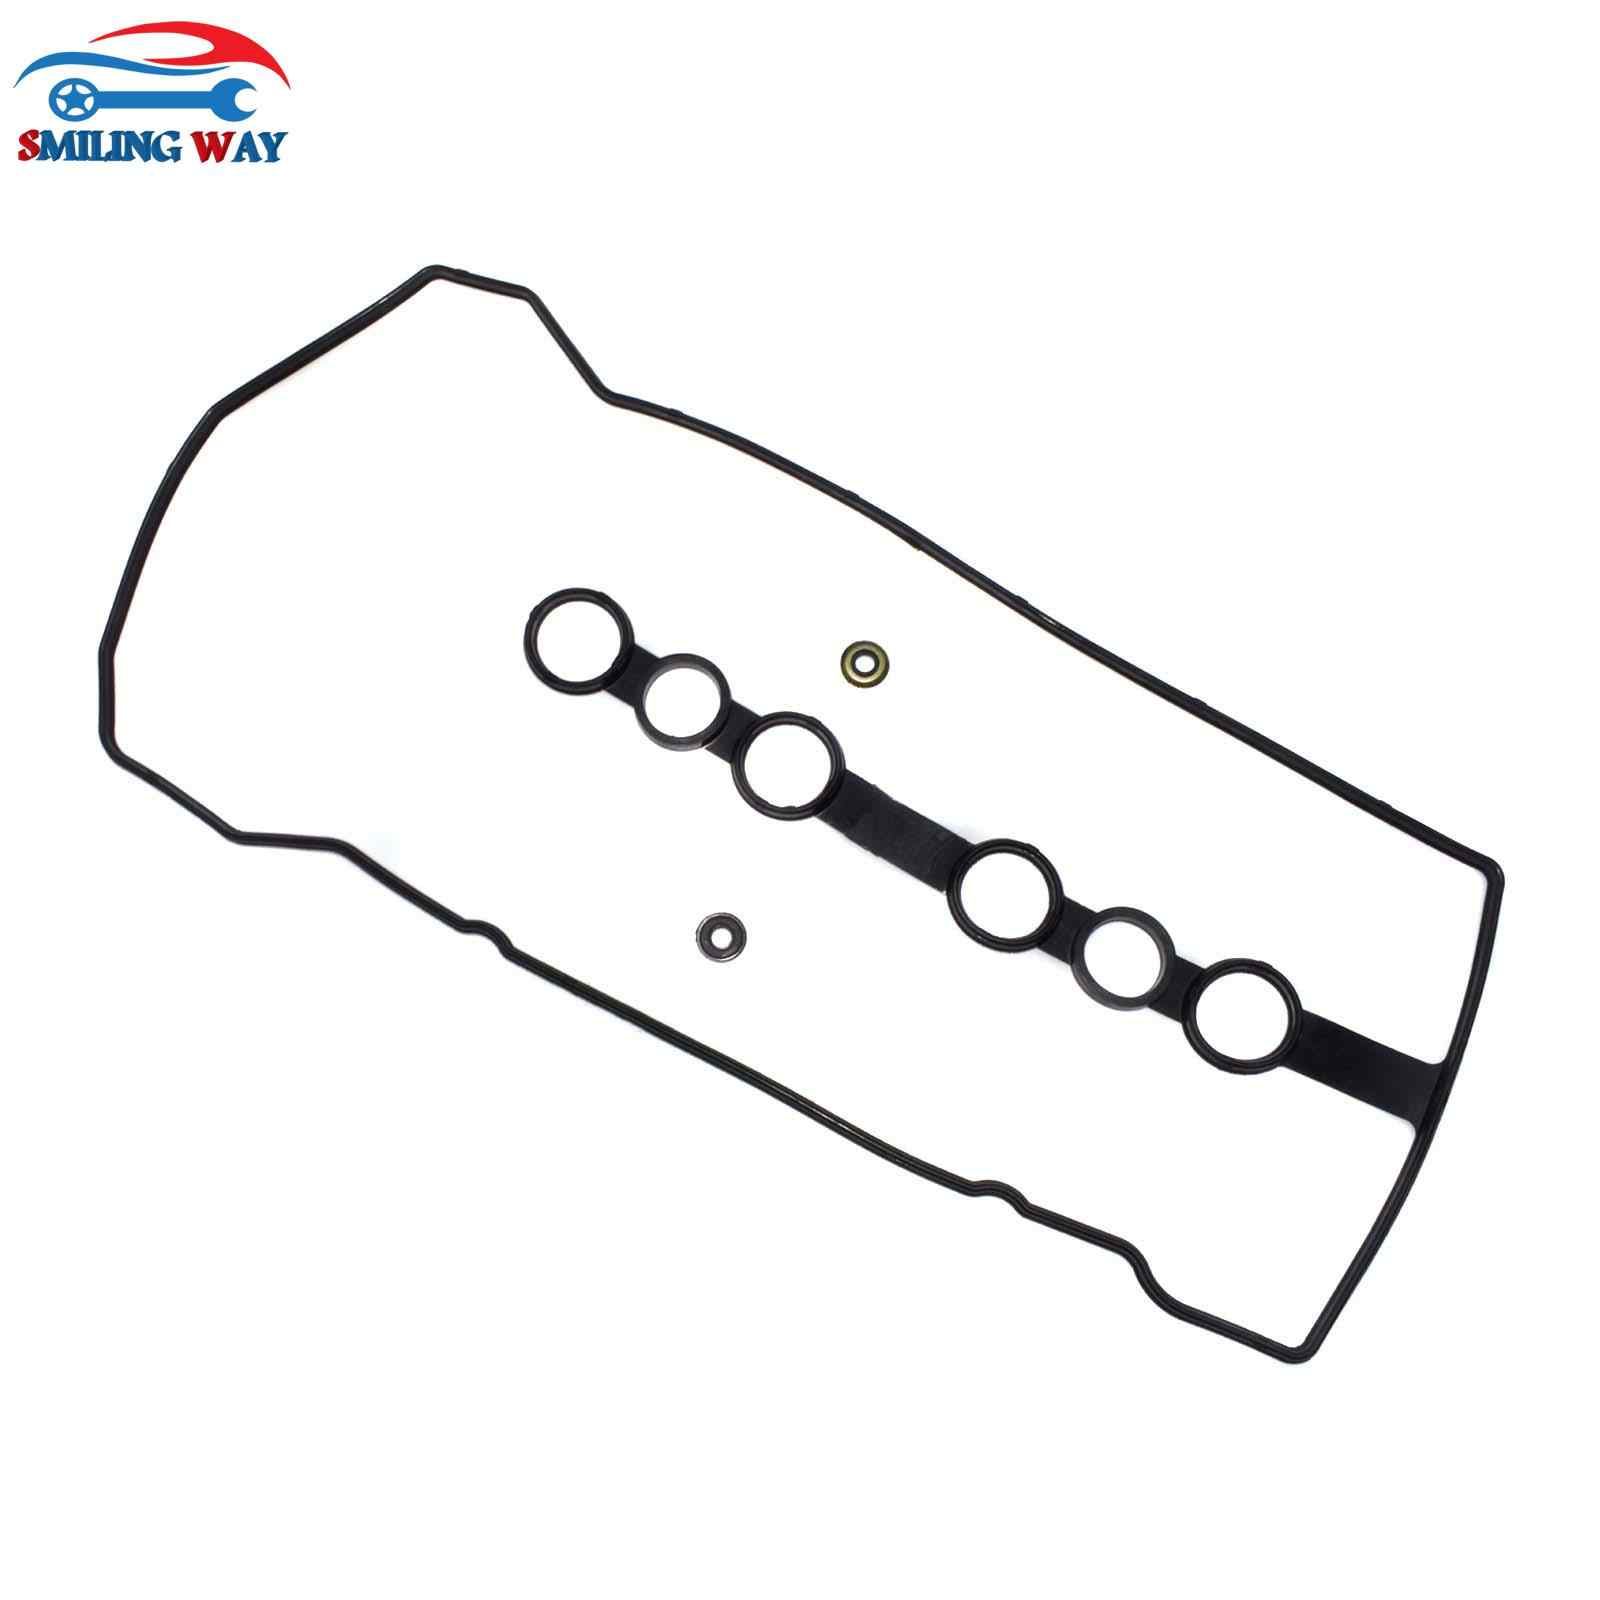 smiling way engine valve cover gasket & 2 grommets seal for chevrolet prizm & toyota corolla 1 8l 1998 1999 oe vs50544r 05 corolla engine toyota 1 8l engine diagram #10